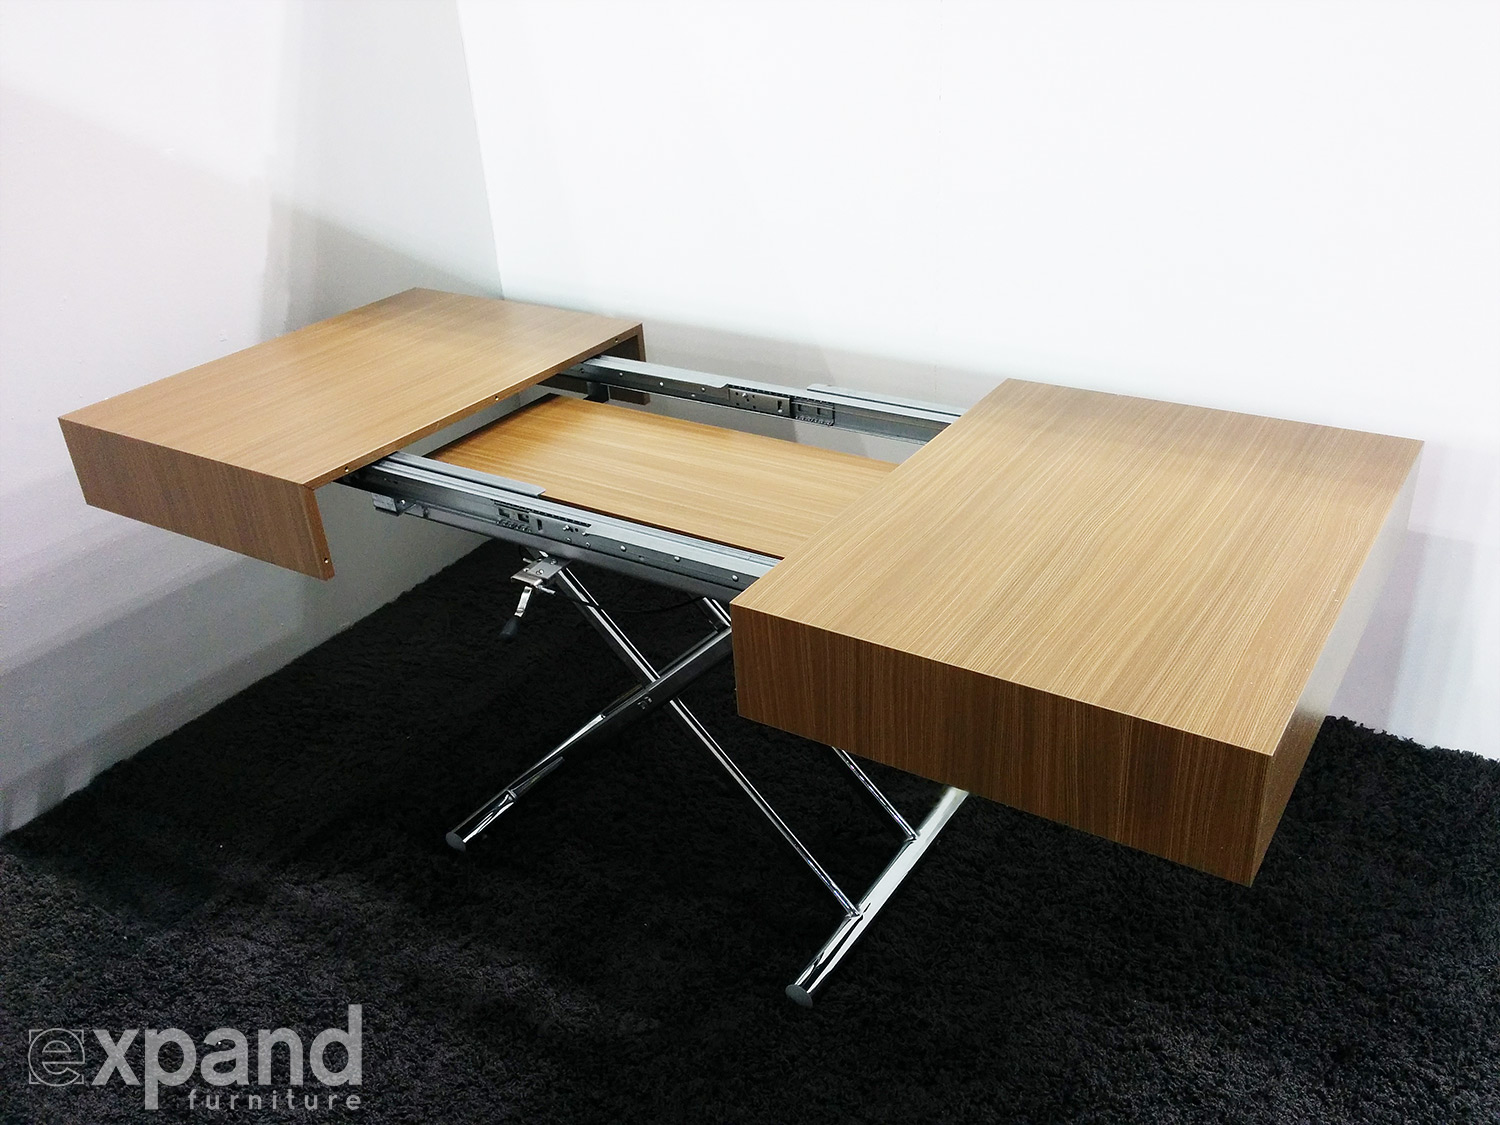 Transforming Box Coffee To Dining Table Expand Furniture